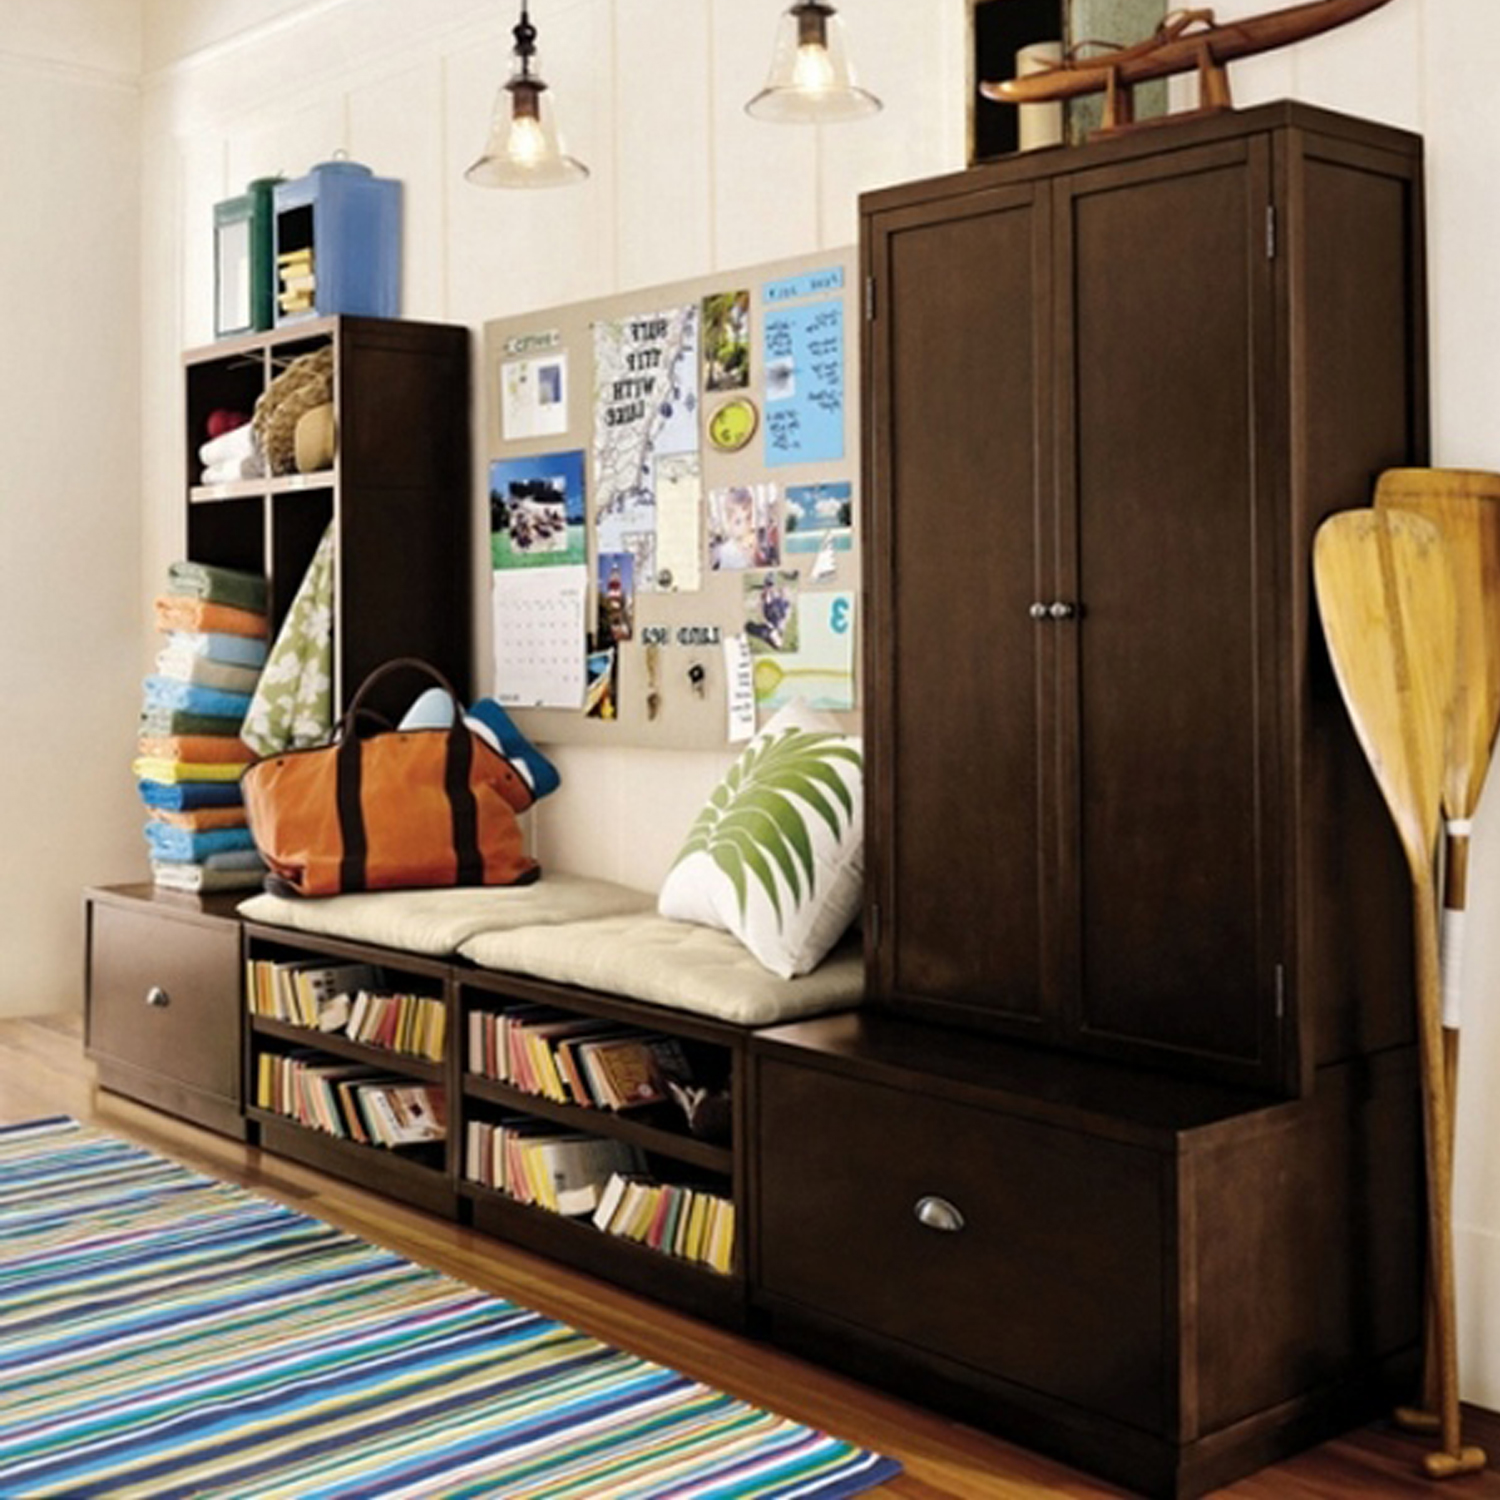 hallway-furniture-design-with-bookshelf-and-furniture-storage-under-wooden-cabinet-combined-with-bench-seat-and-pillow-ideas